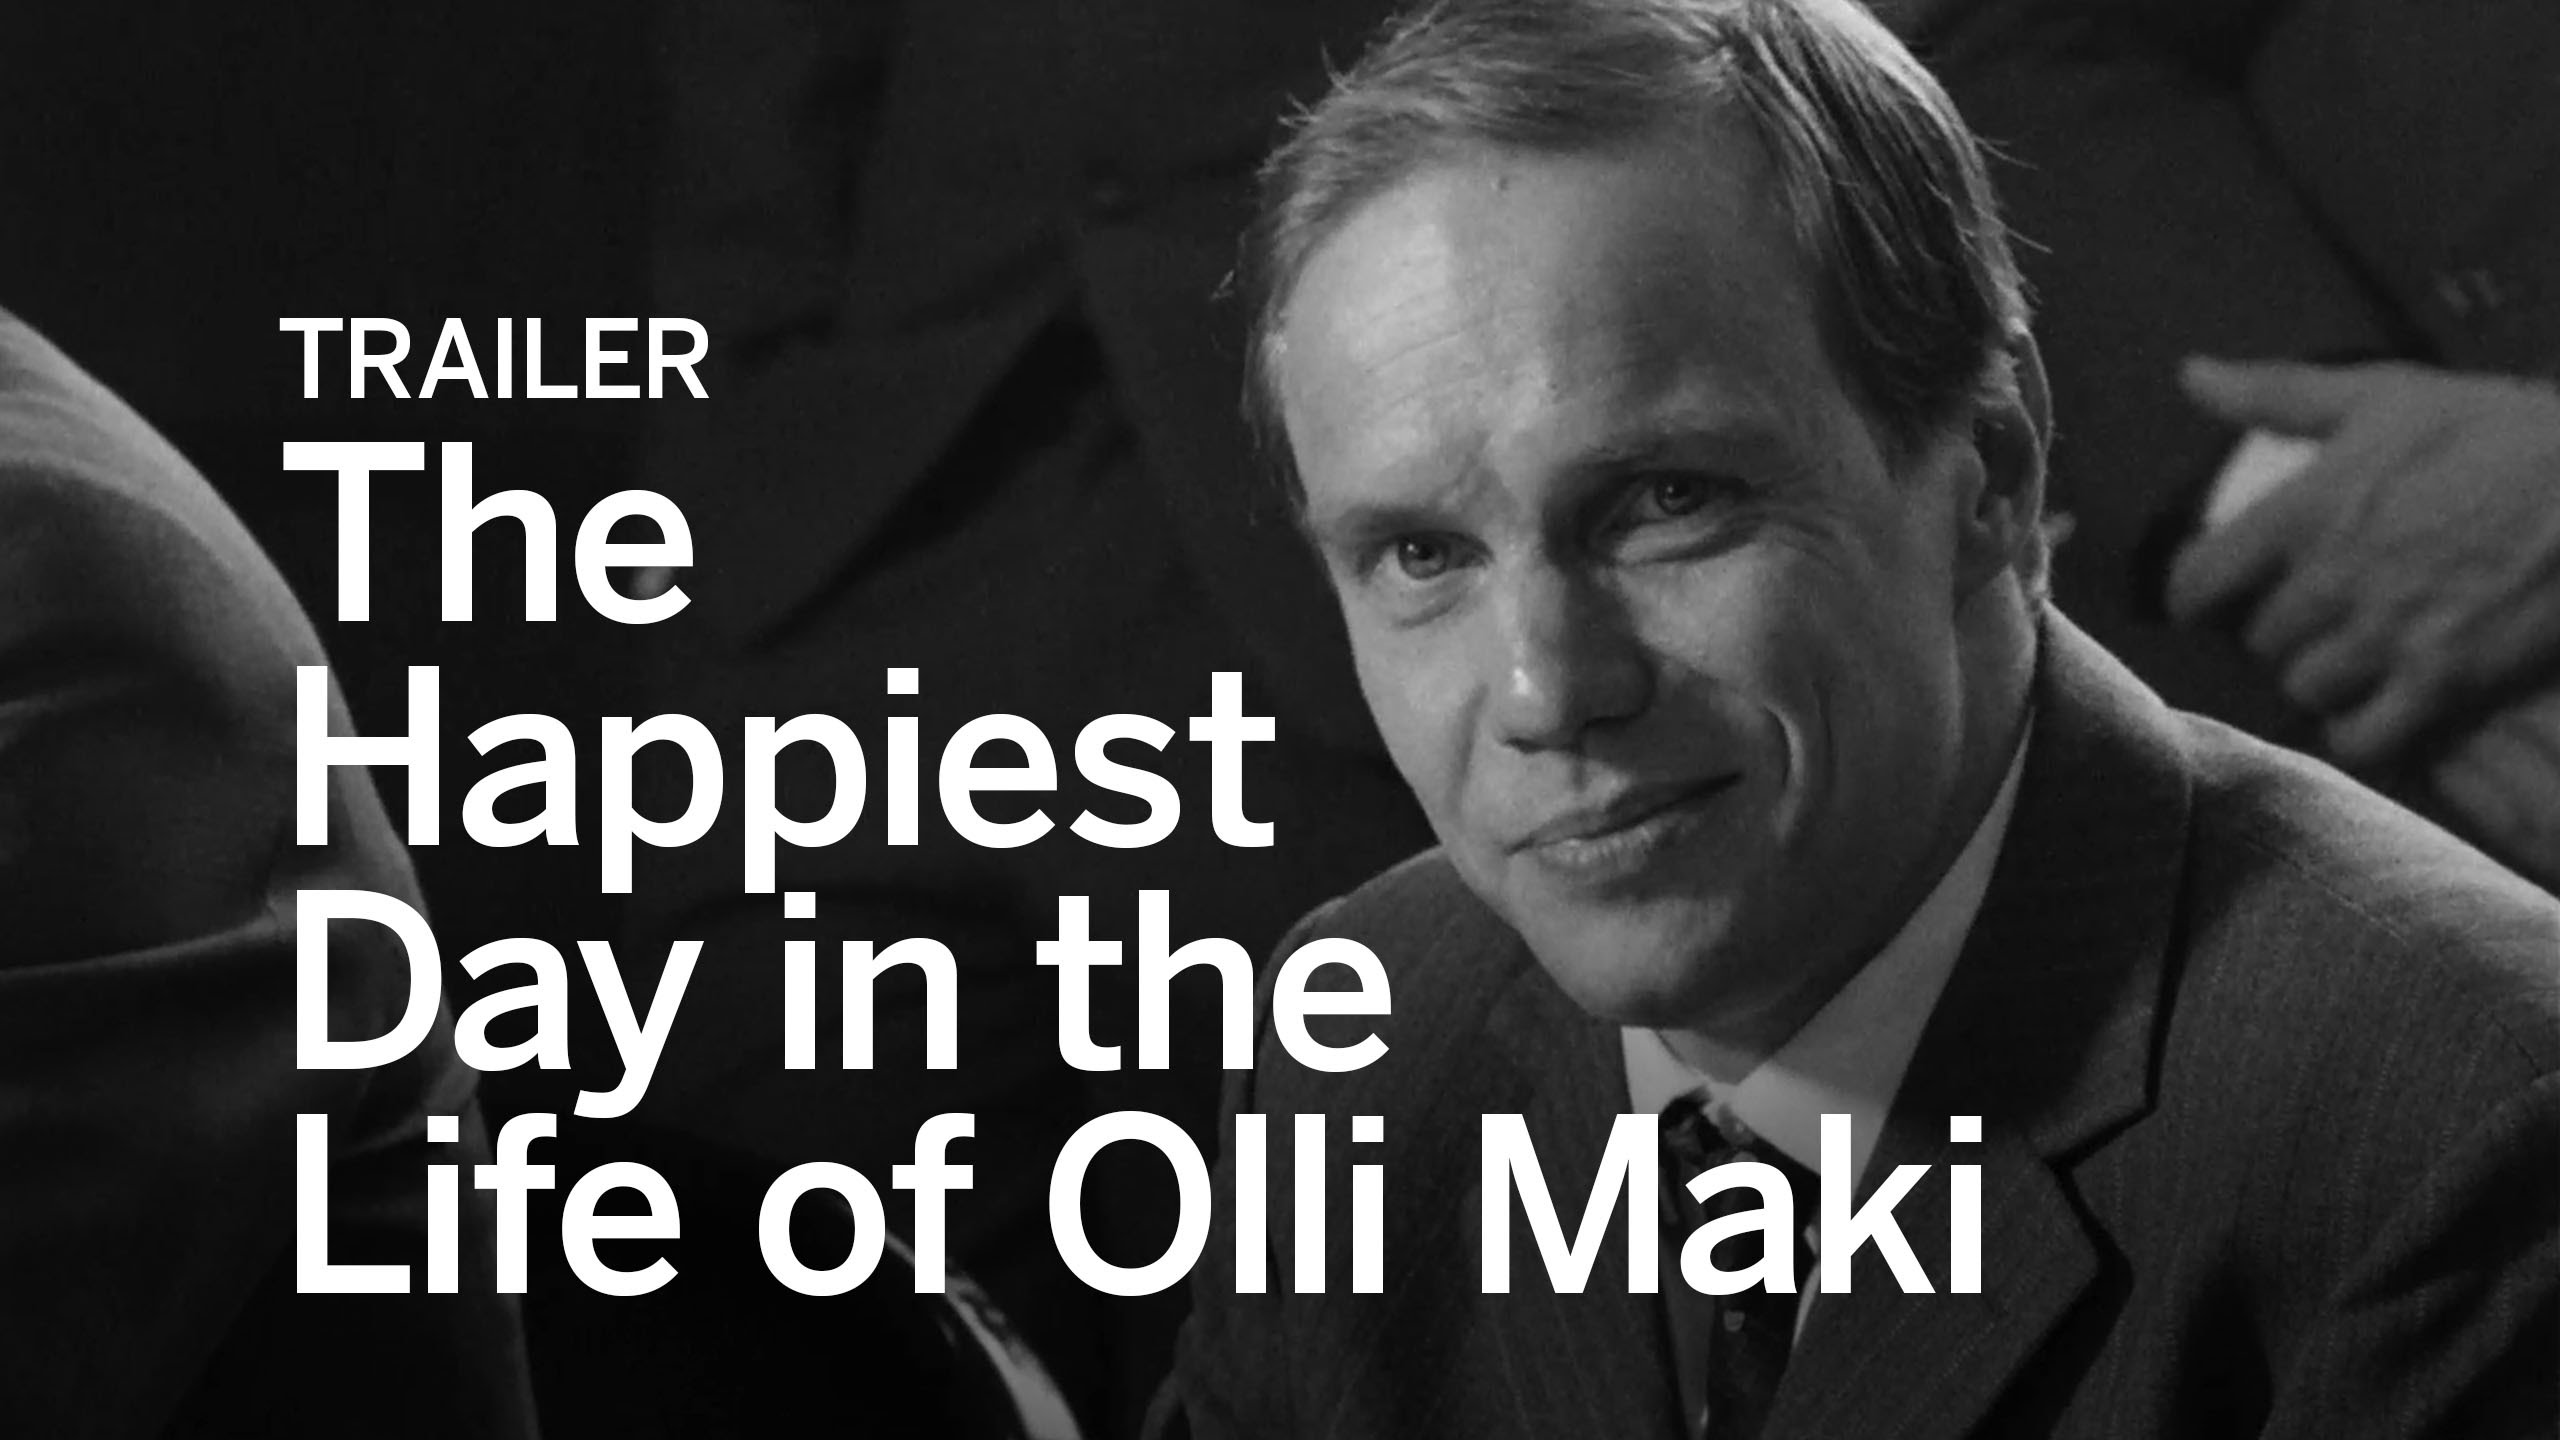 The Happiest Day in the Life of Olli Mäki (2016) video/trailer